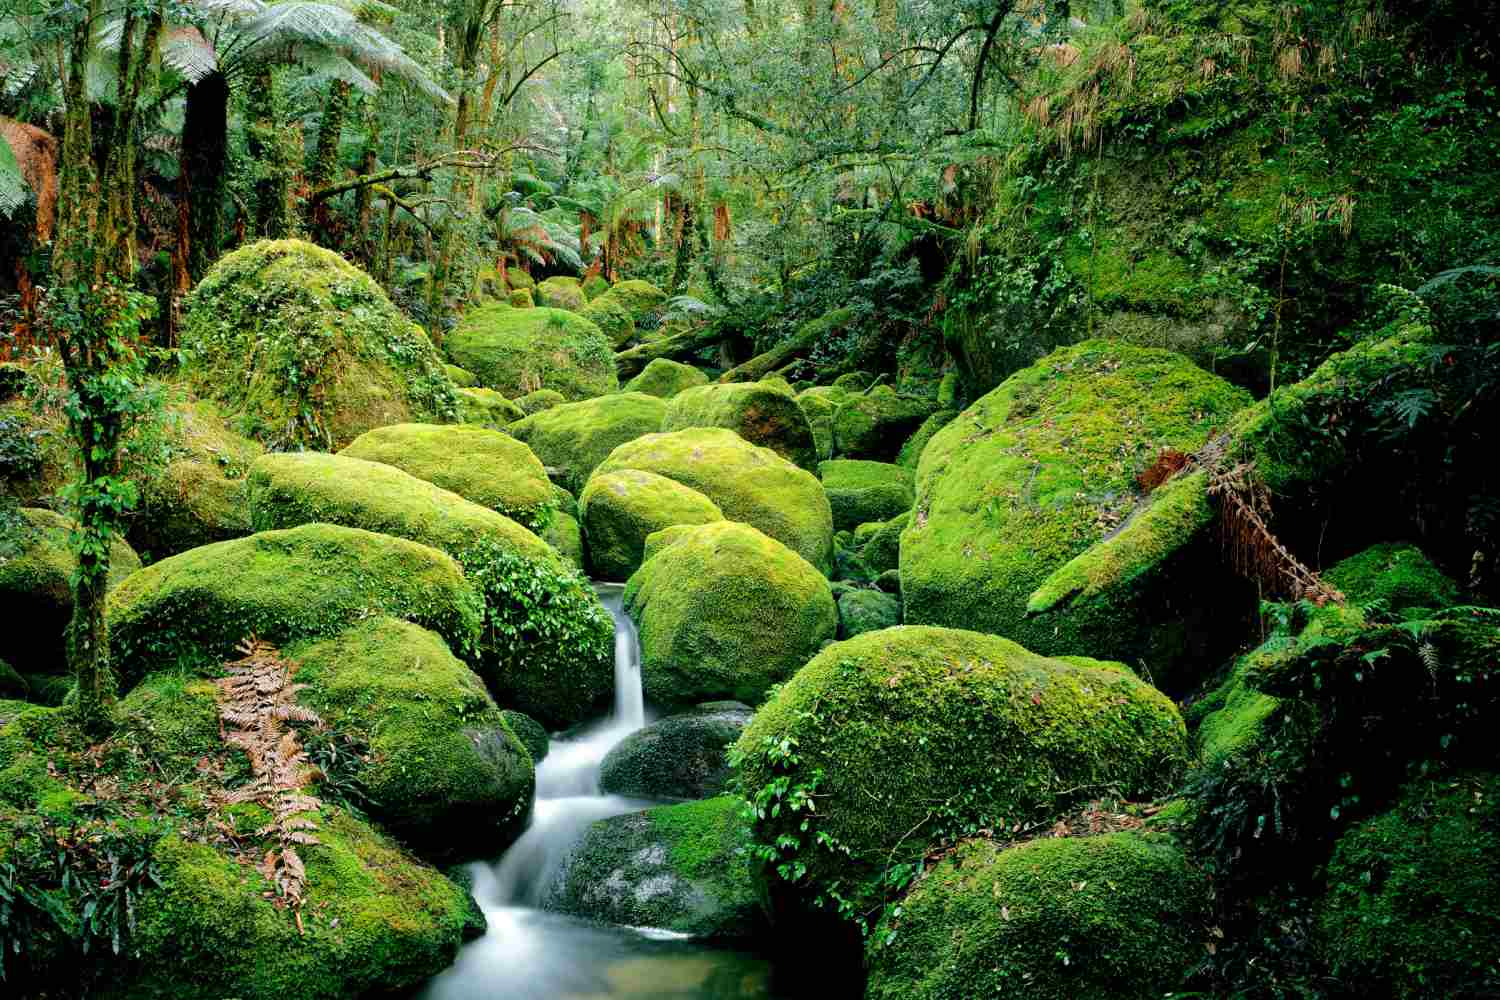 creek flowing through moss-covered boulders